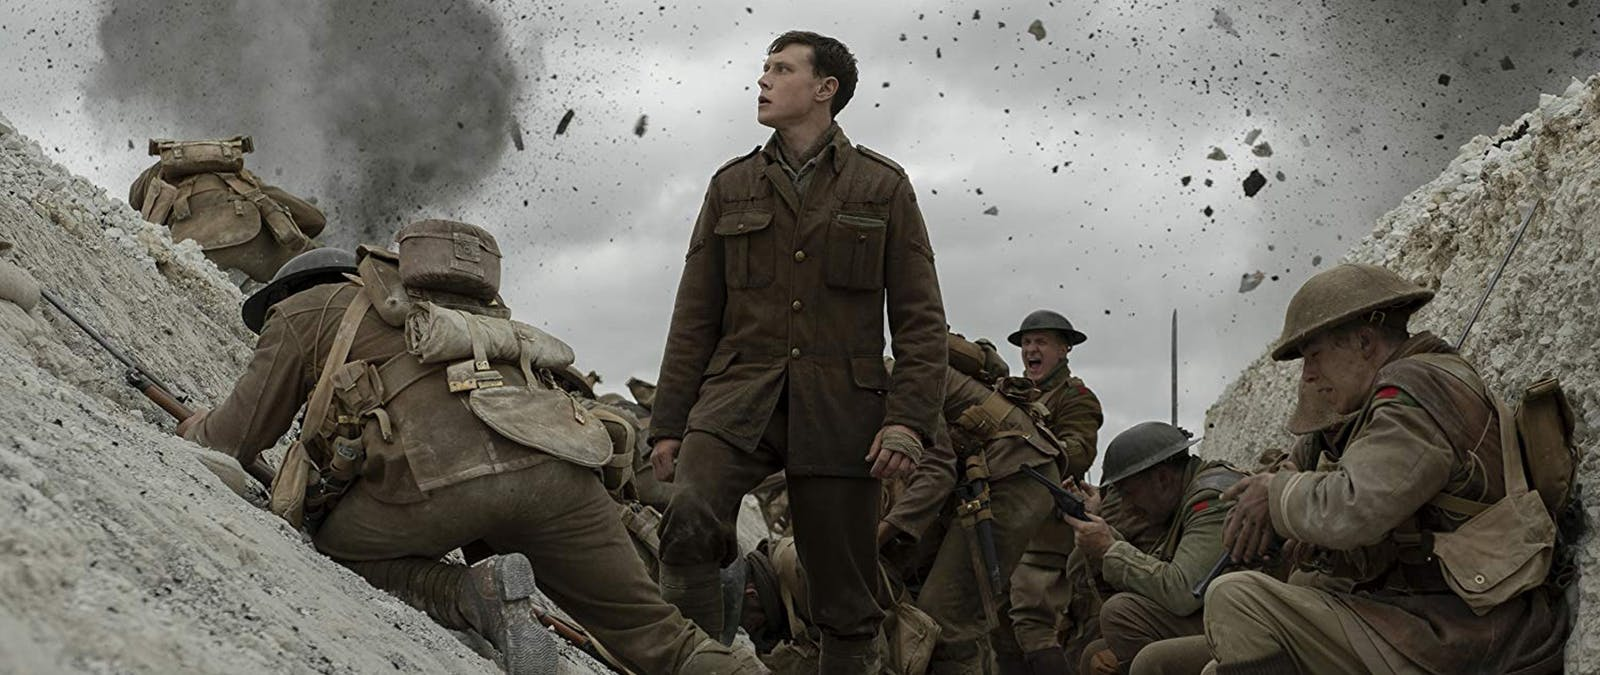 George MacKay mitt i krigets kaos i 1917. Foto: Universal Pictures & EOne